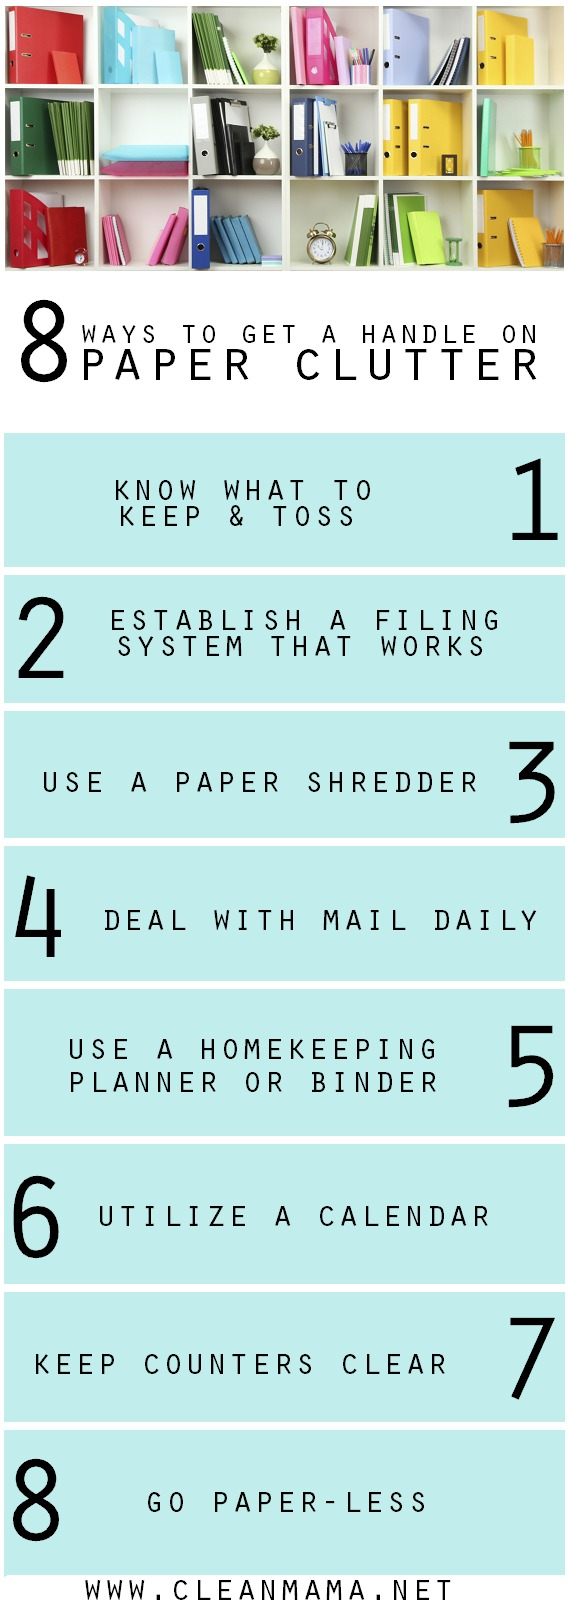 8 Ways to Get a Handle on Paper Clutter for Good via Clean Mama